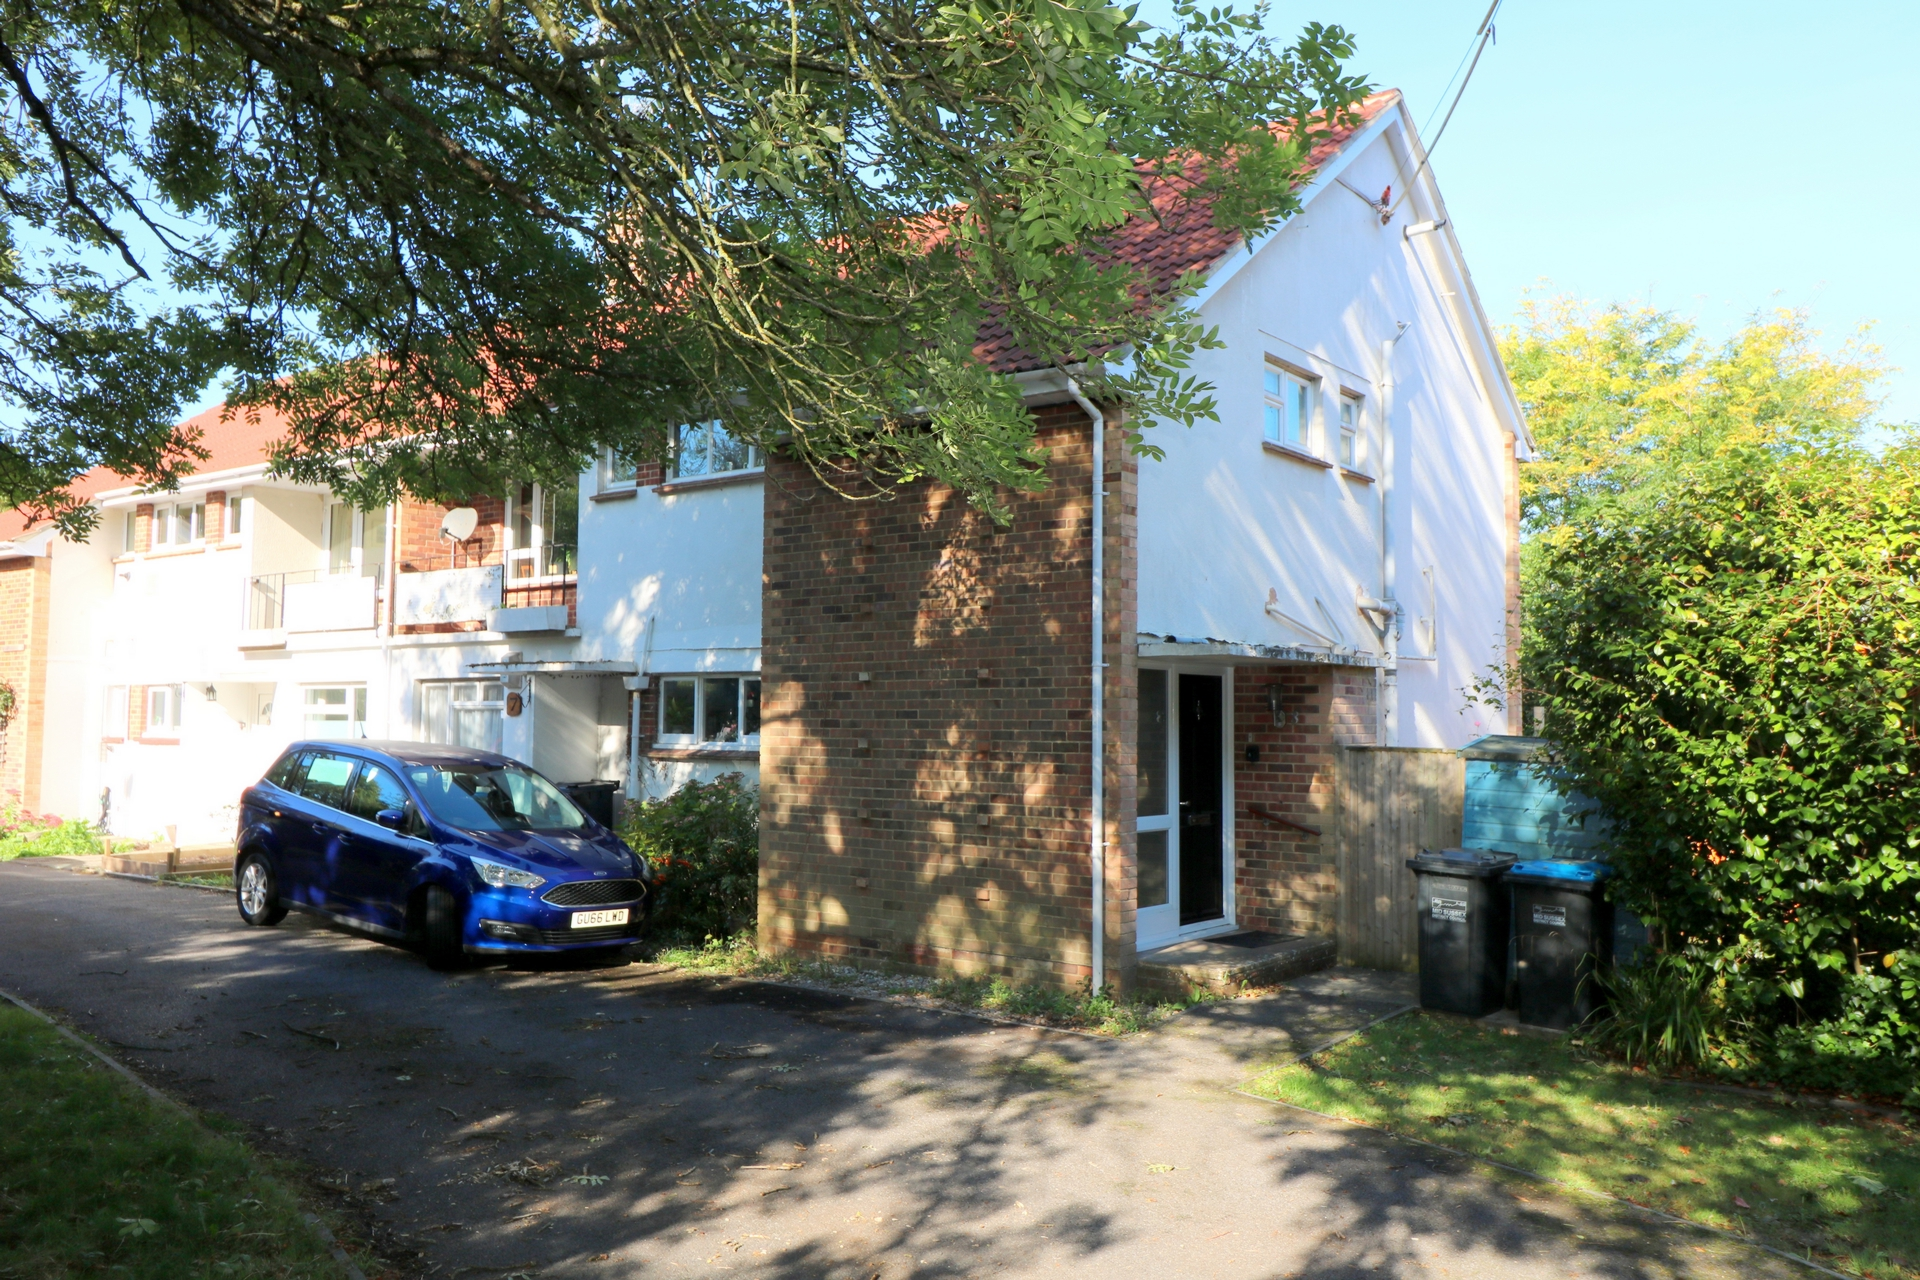 Photo 10, West Common, Lindfield, RH16